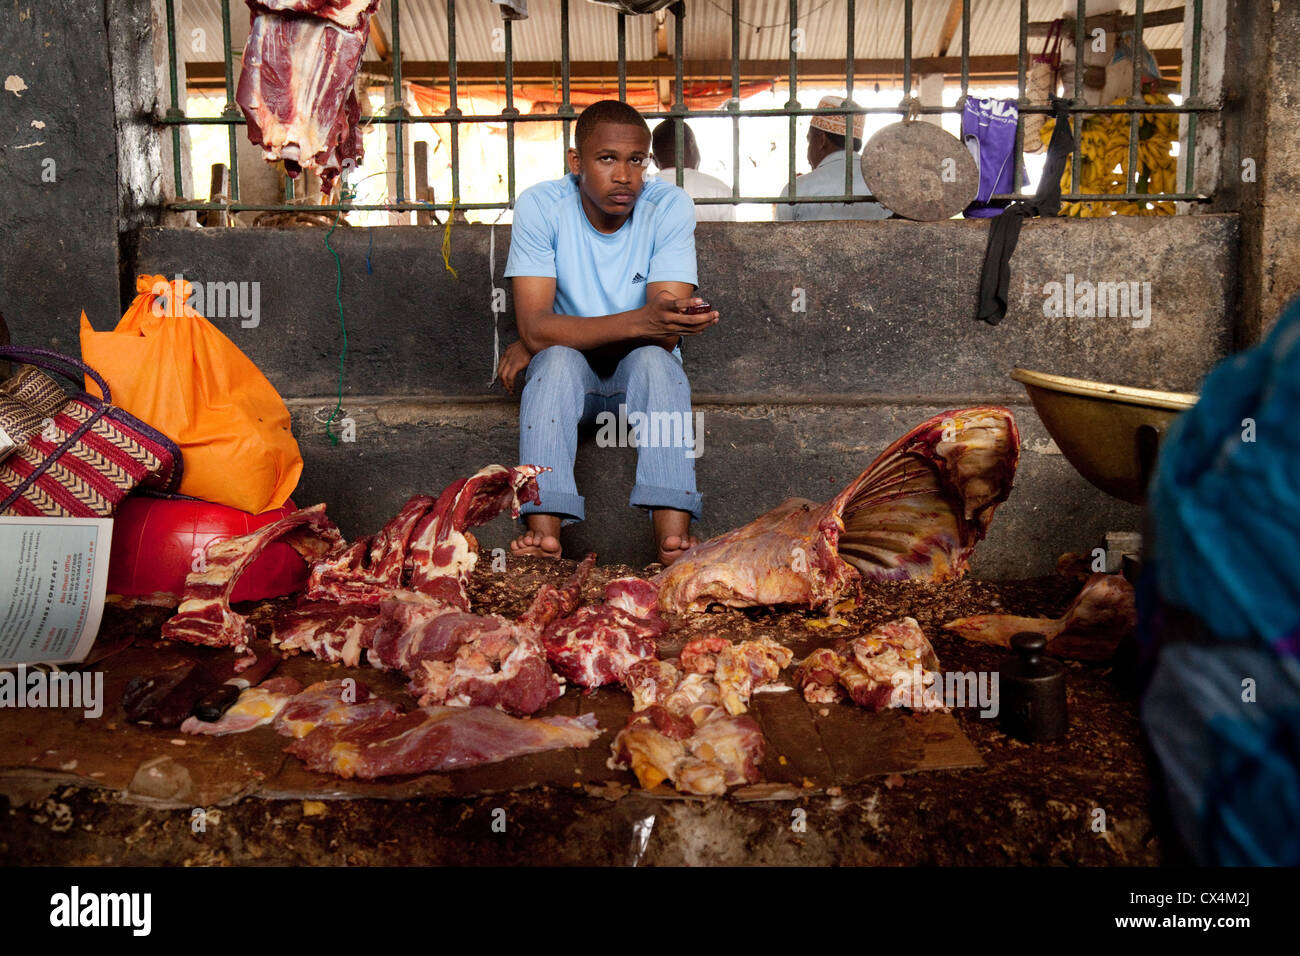 Butcher with meat for sale in the indoor food market, Darajani market, Stone Town, Zanzibar, Africa - Stock Image